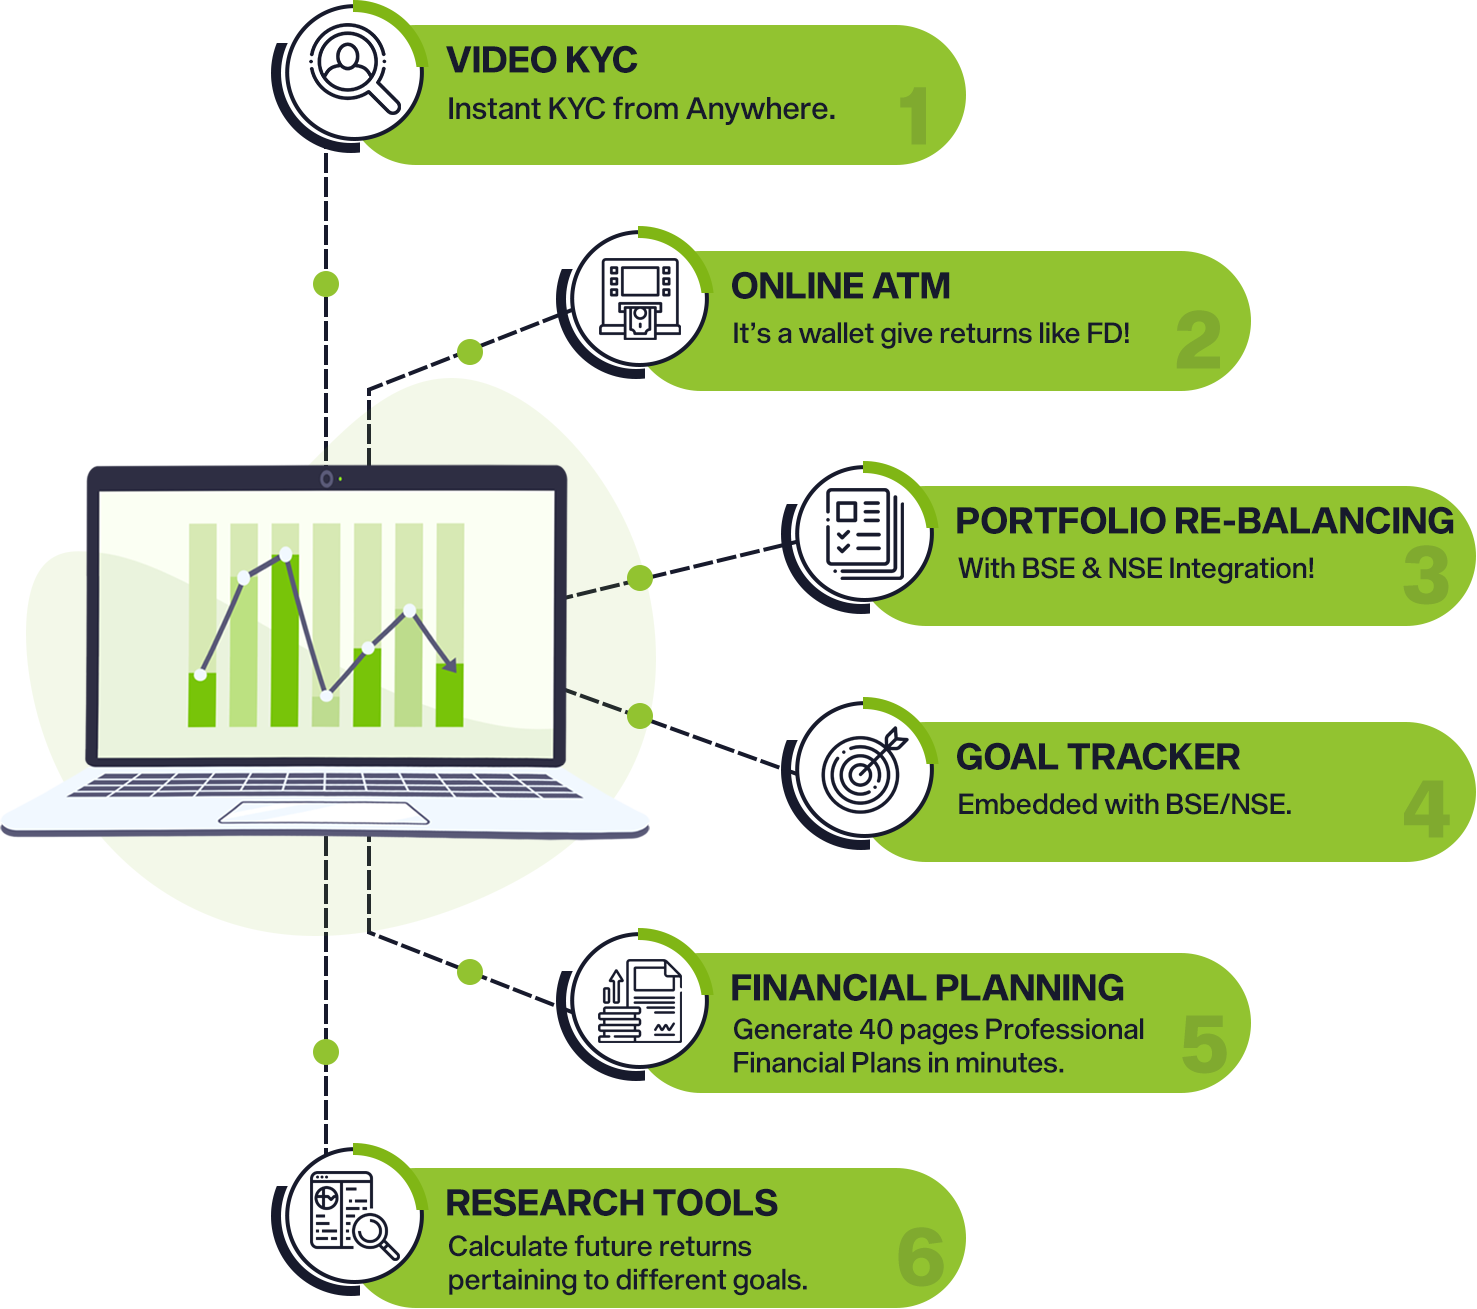 What benefits Mutual Fund Software for IFA provides?